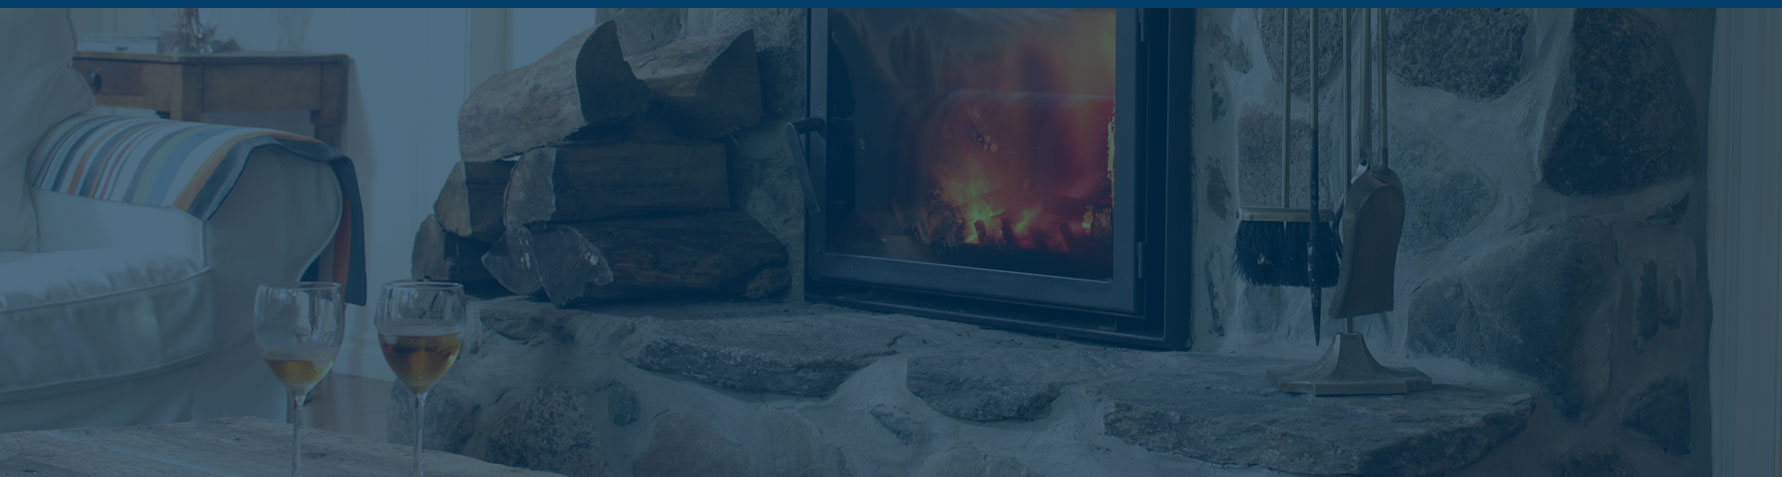 Visit our member directory for fireplace insert manufacturers.